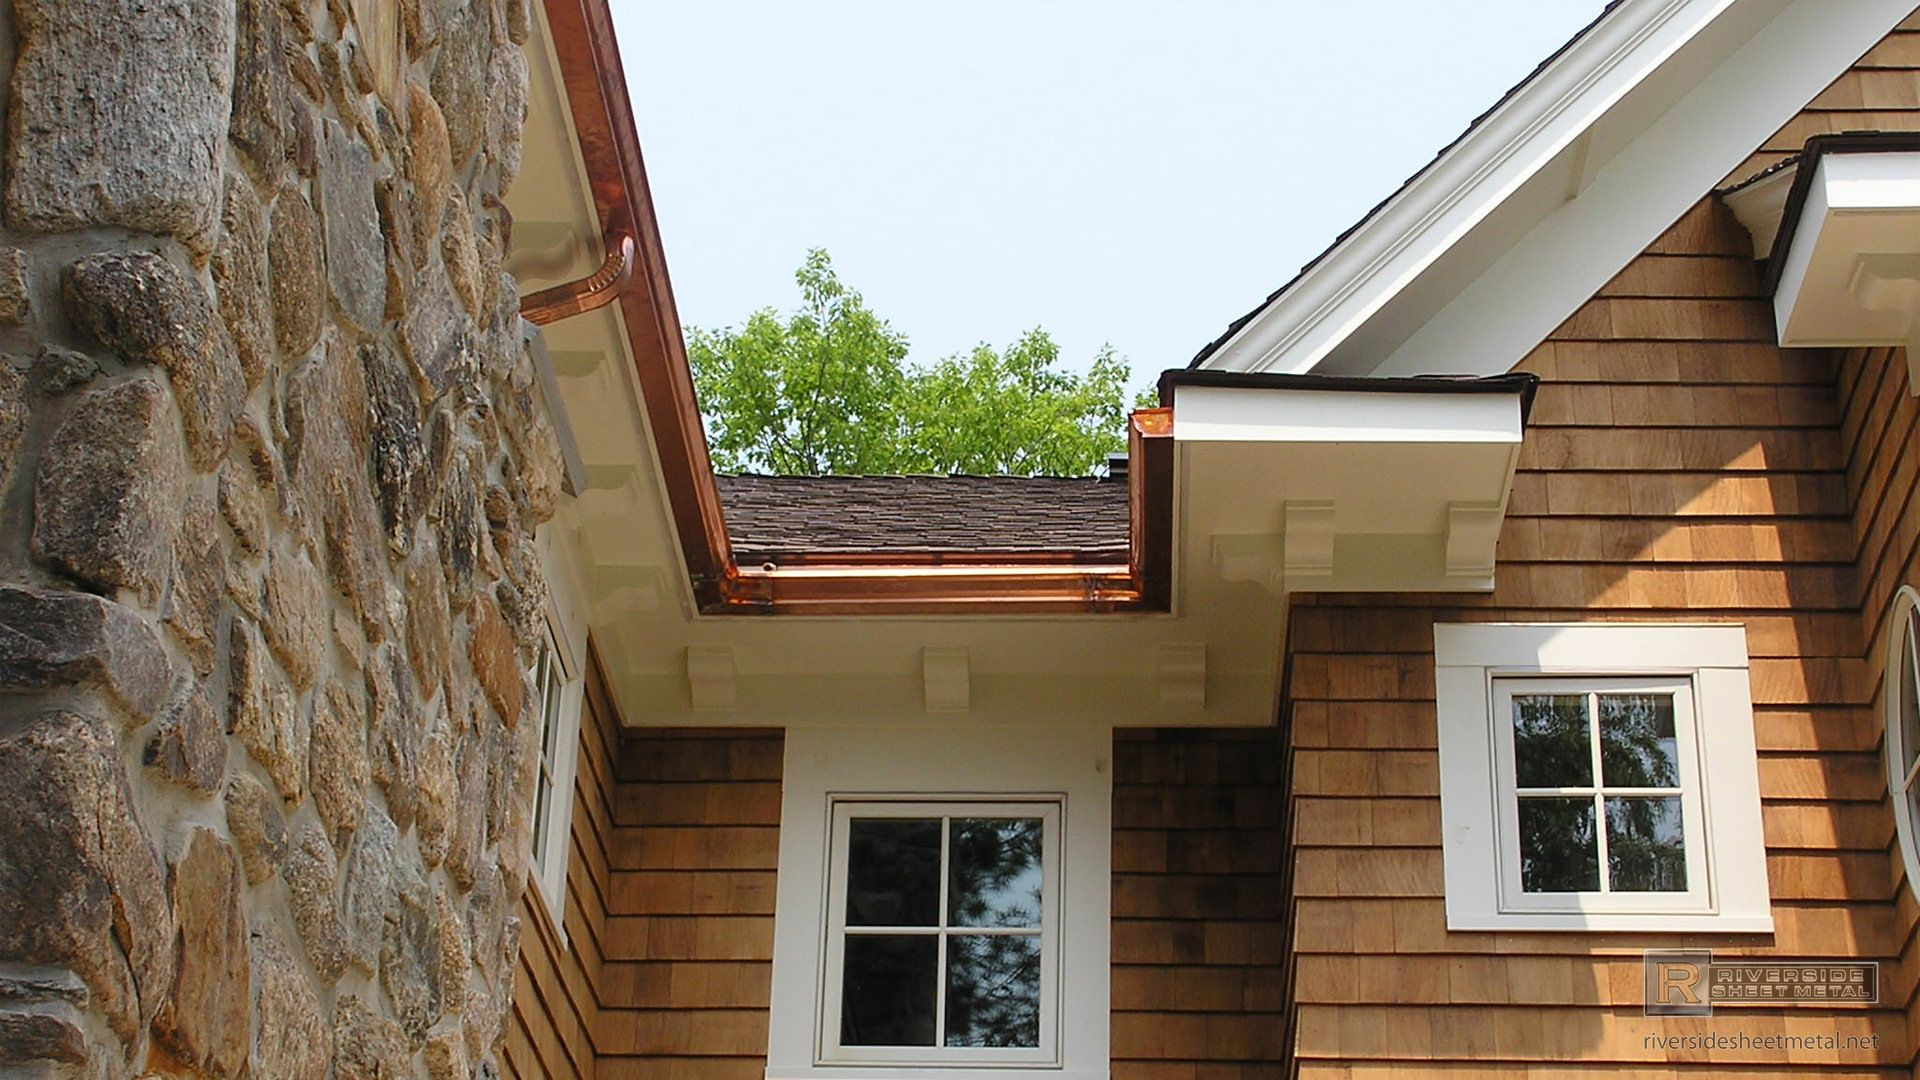 Pin By Alder Grove On Gutter Details Gutters Gutter Downspout